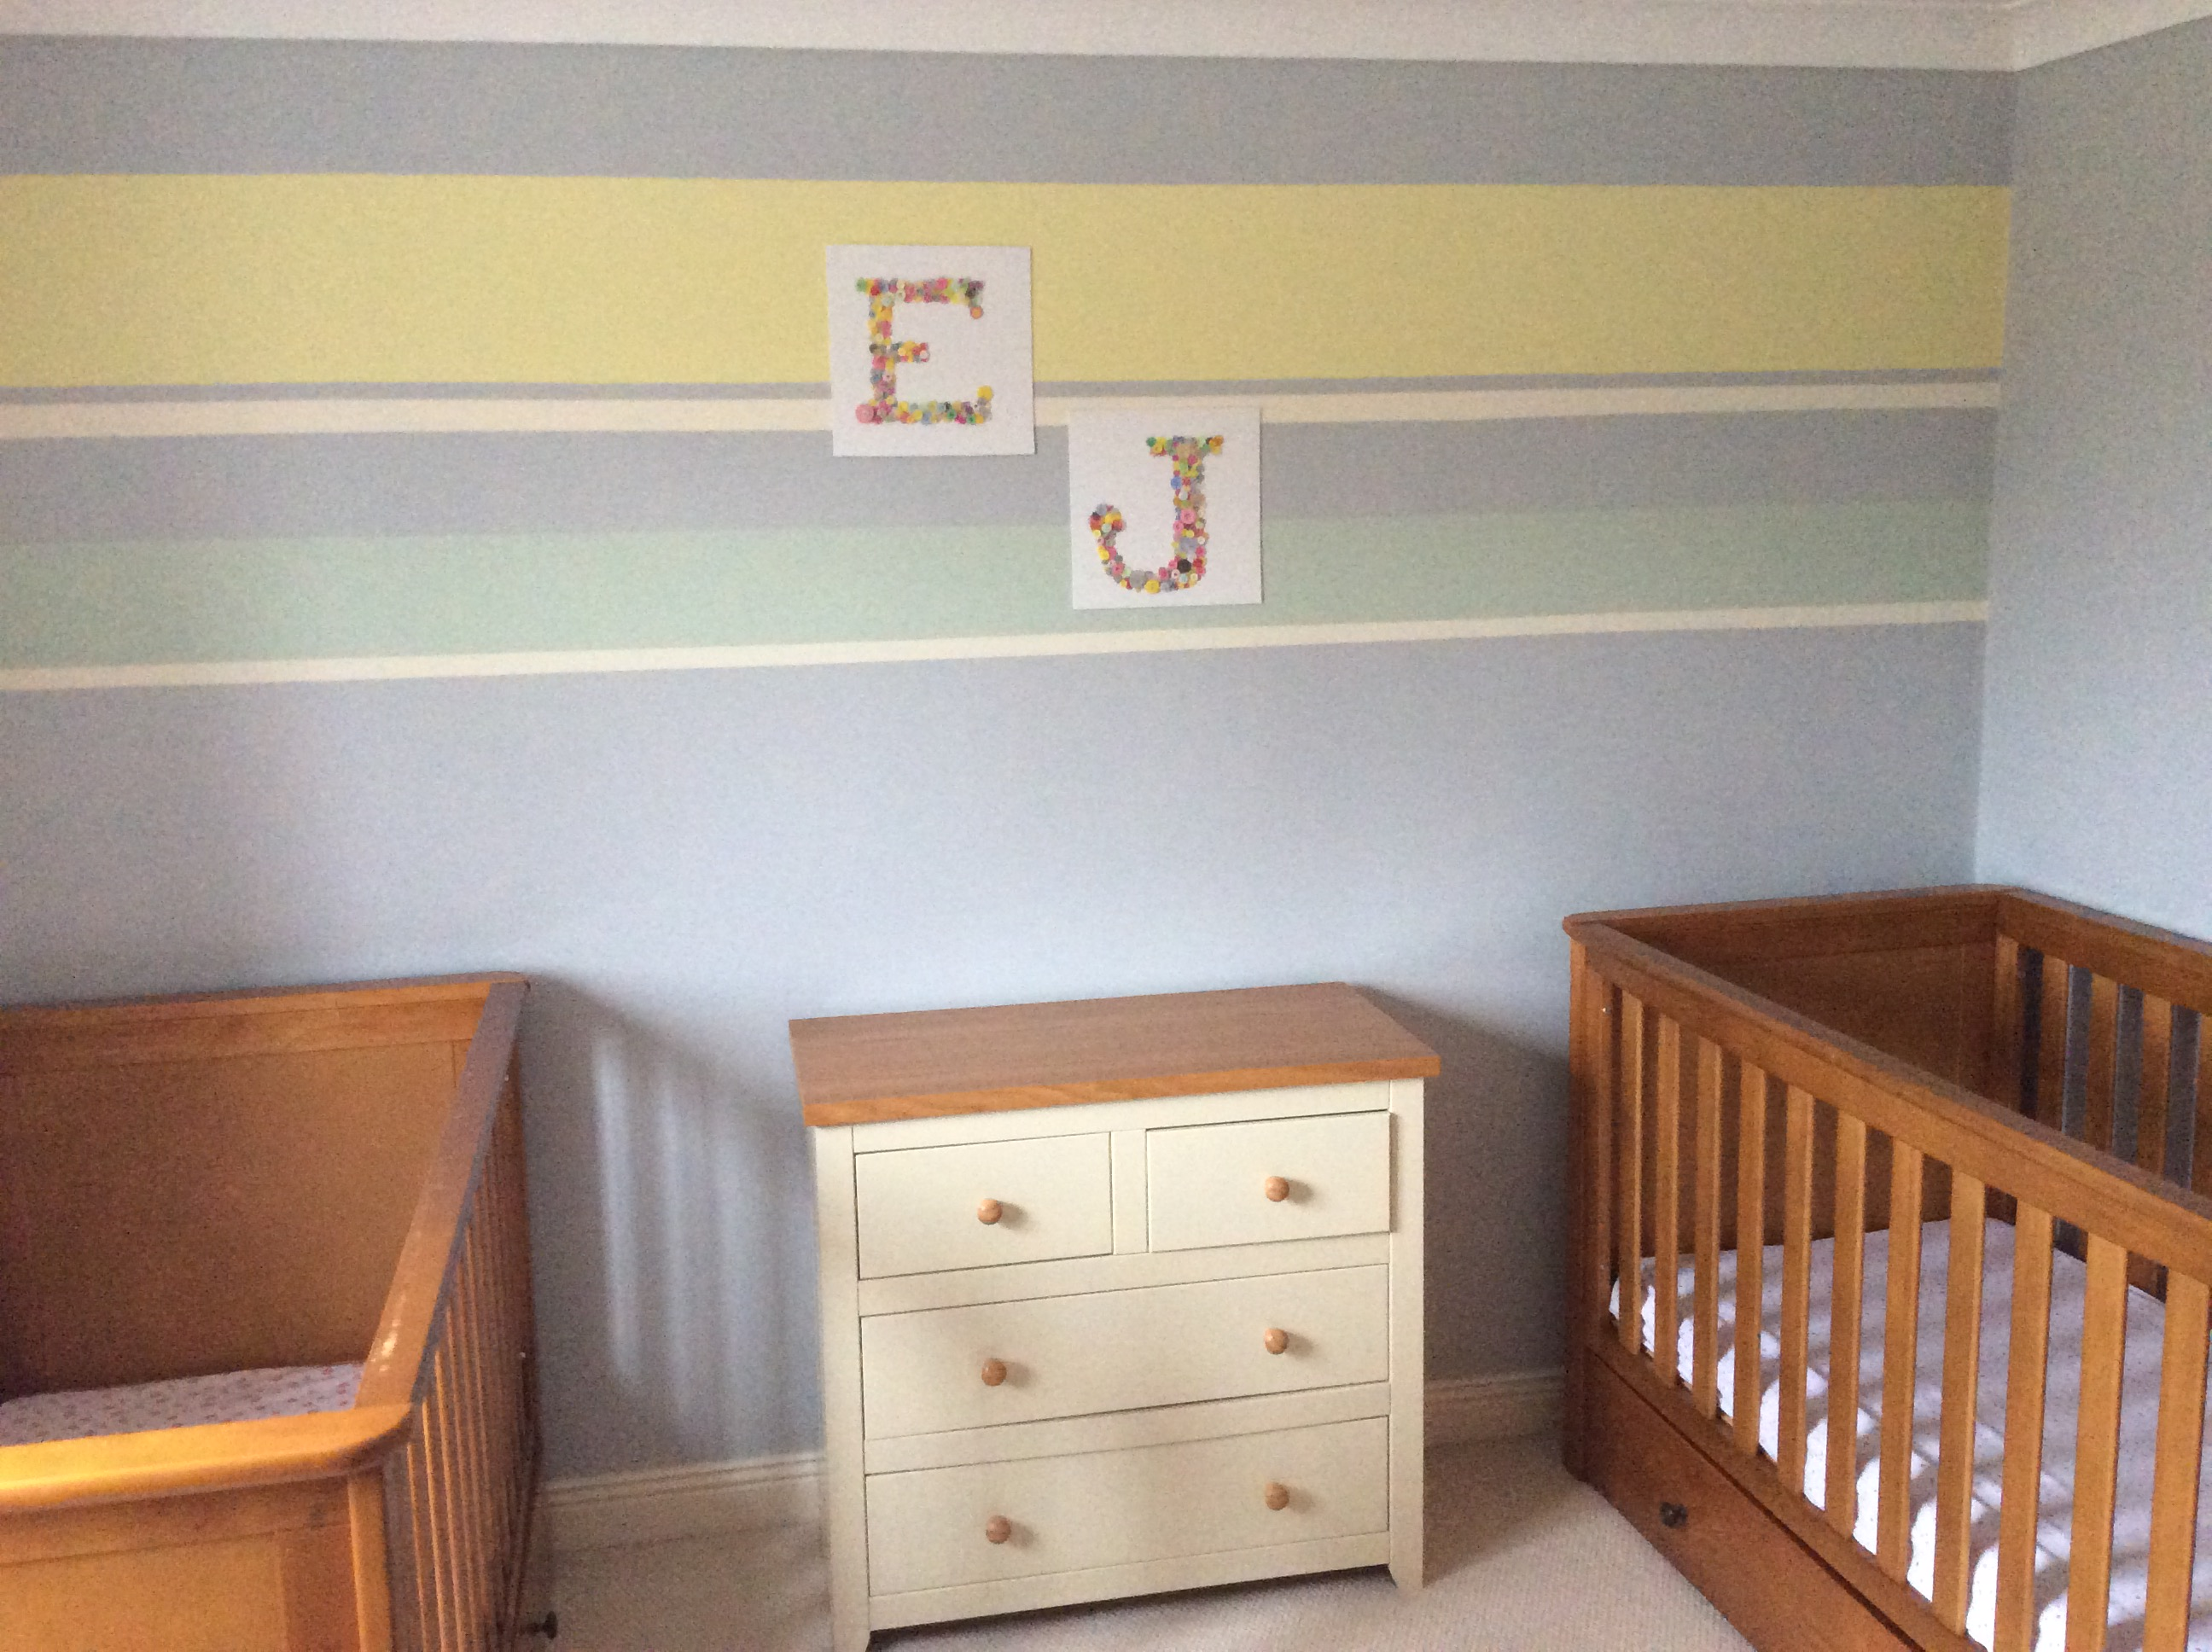 When to transition from cot to bed?